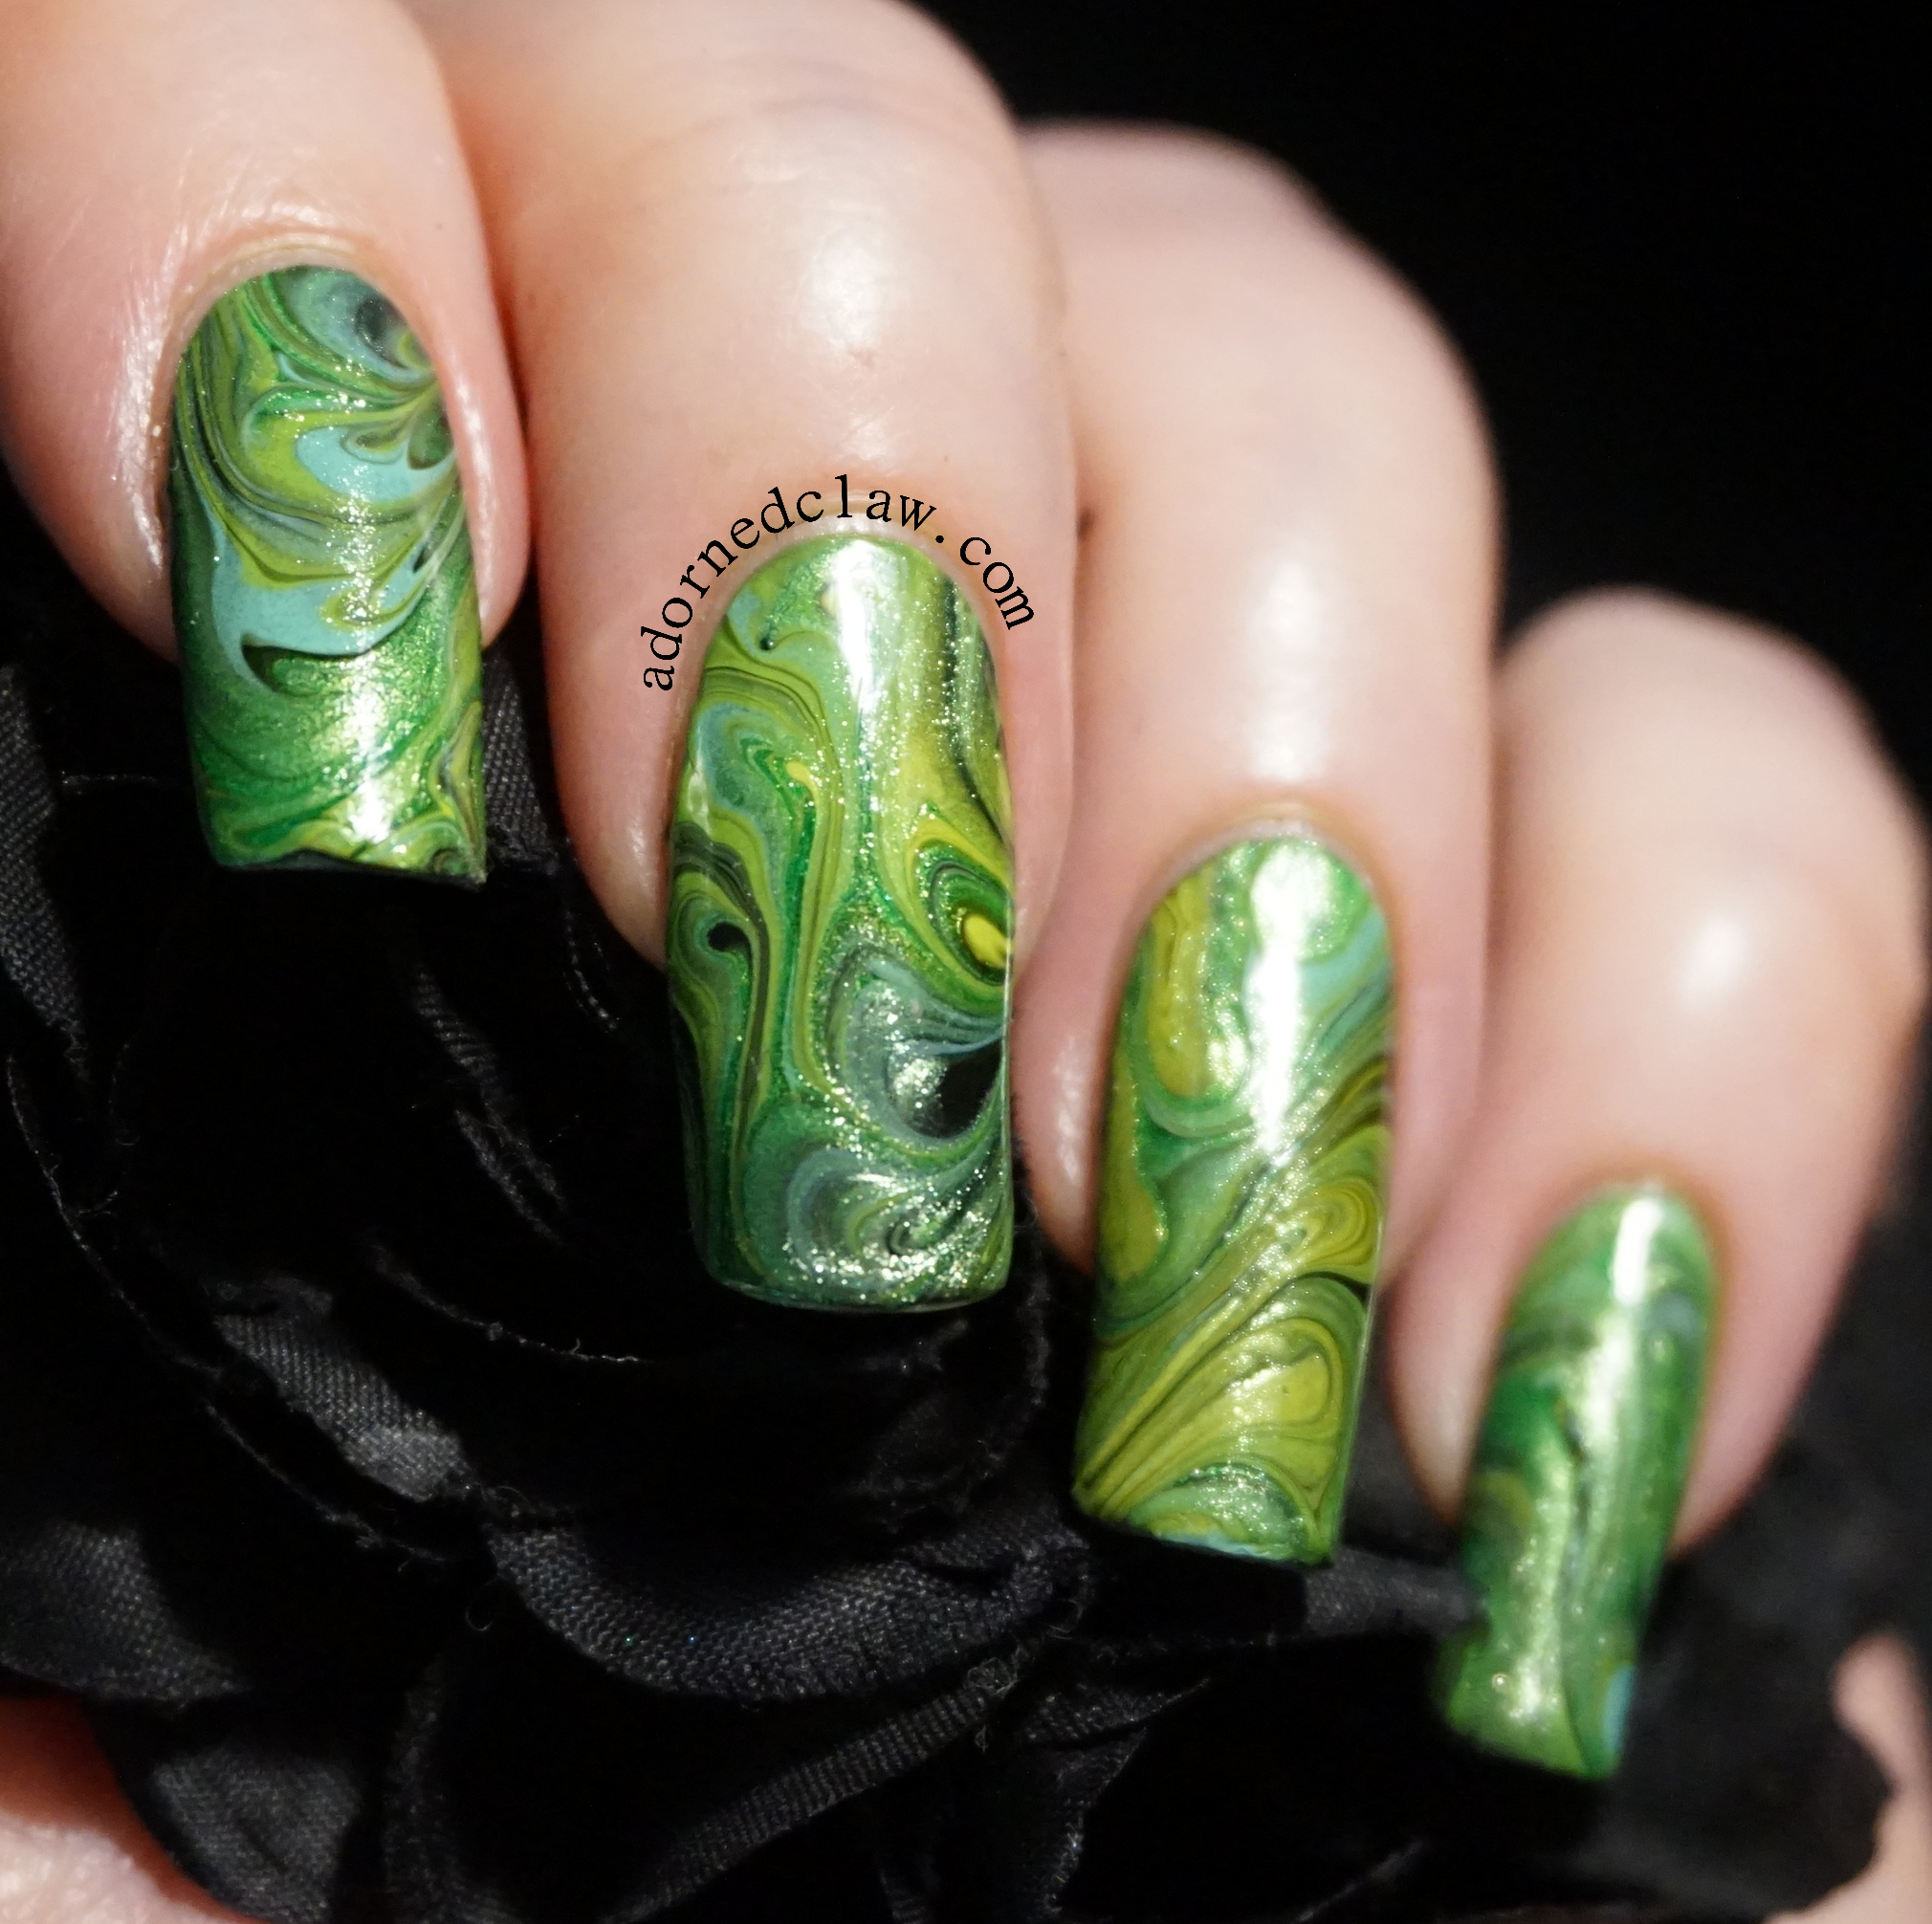 The adorned claw nail art green nail art decal prinsesfo Image collections